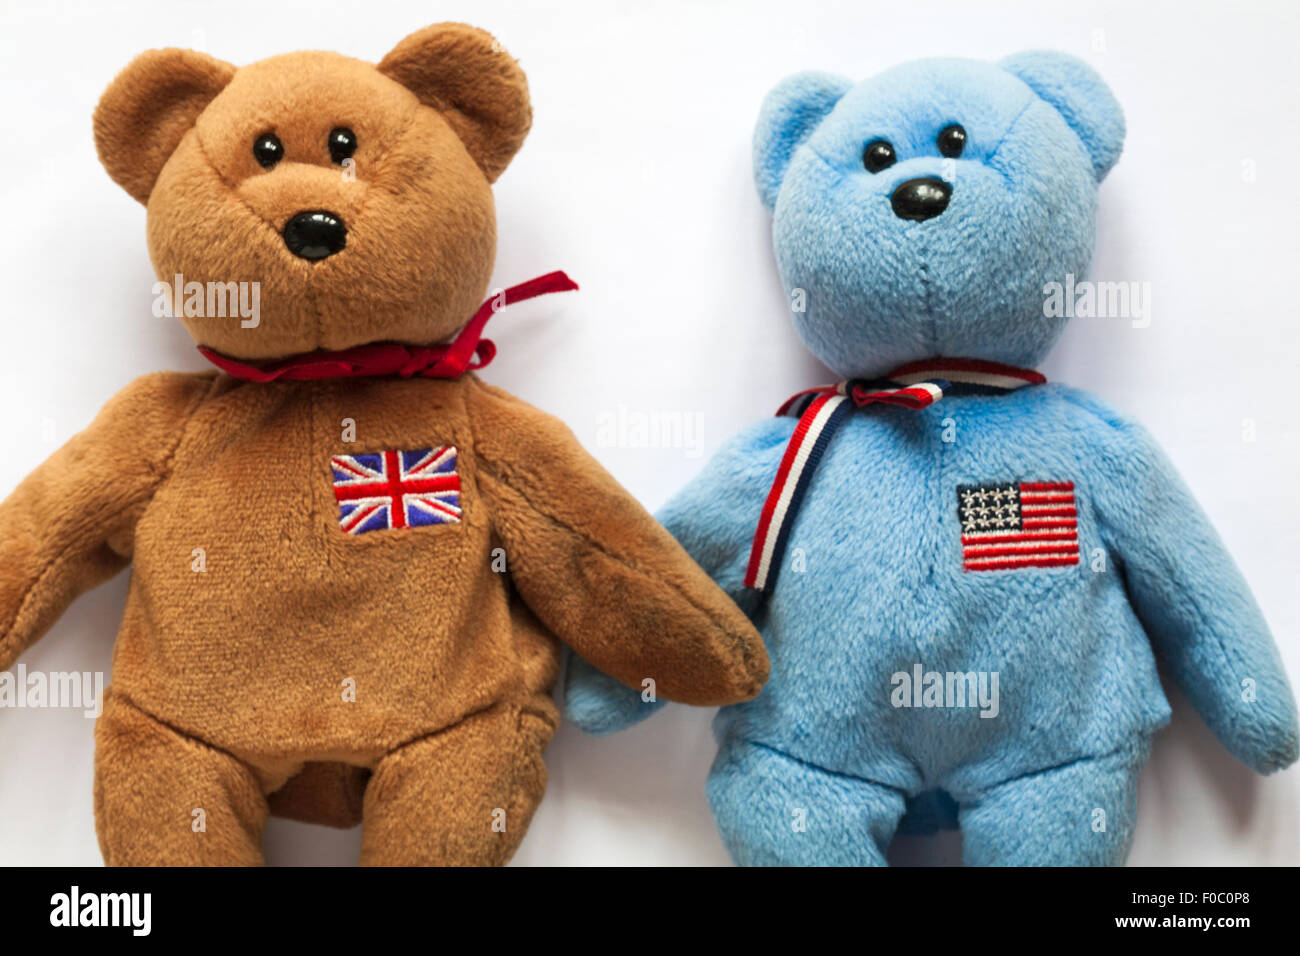 a942574df18 America and Britannia ty beanie baby teddy bears set on white background -  UK and USA